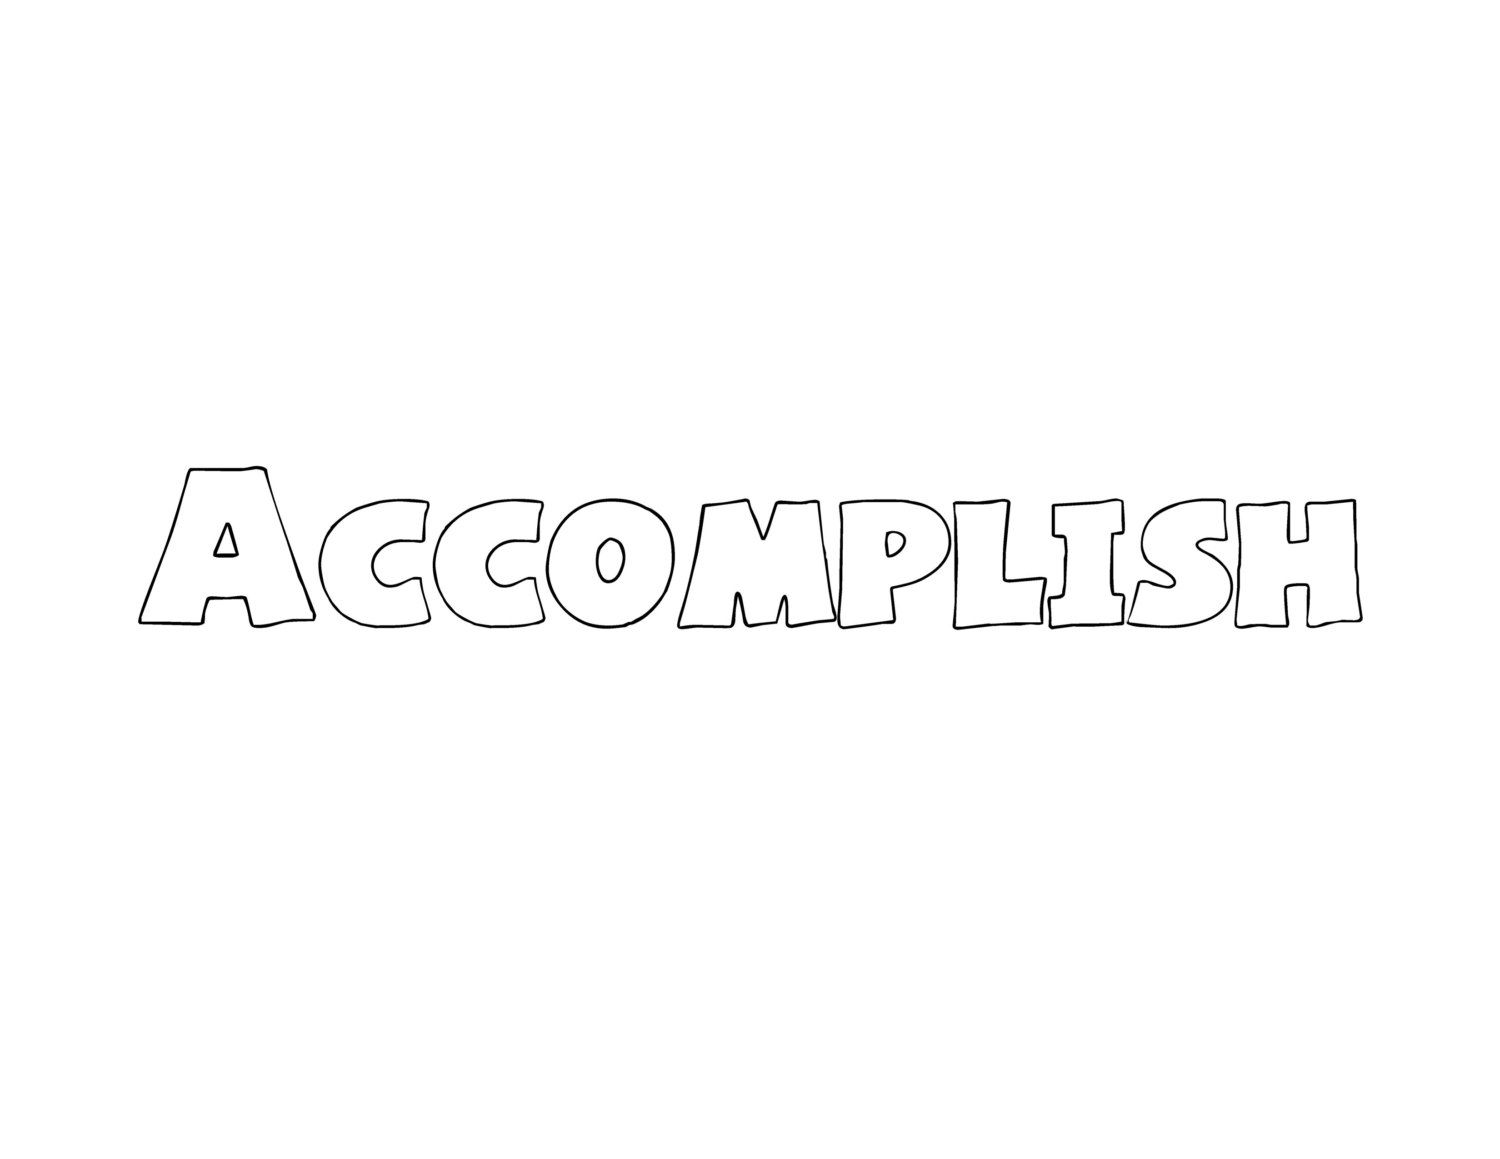 Accomplish One Word Doodle Page for New Year's Resolutions, Vision Board, Goal Planning, Mind Mapping, Inspiration, Motivation, etc. #001 by Rewondered on Etsy